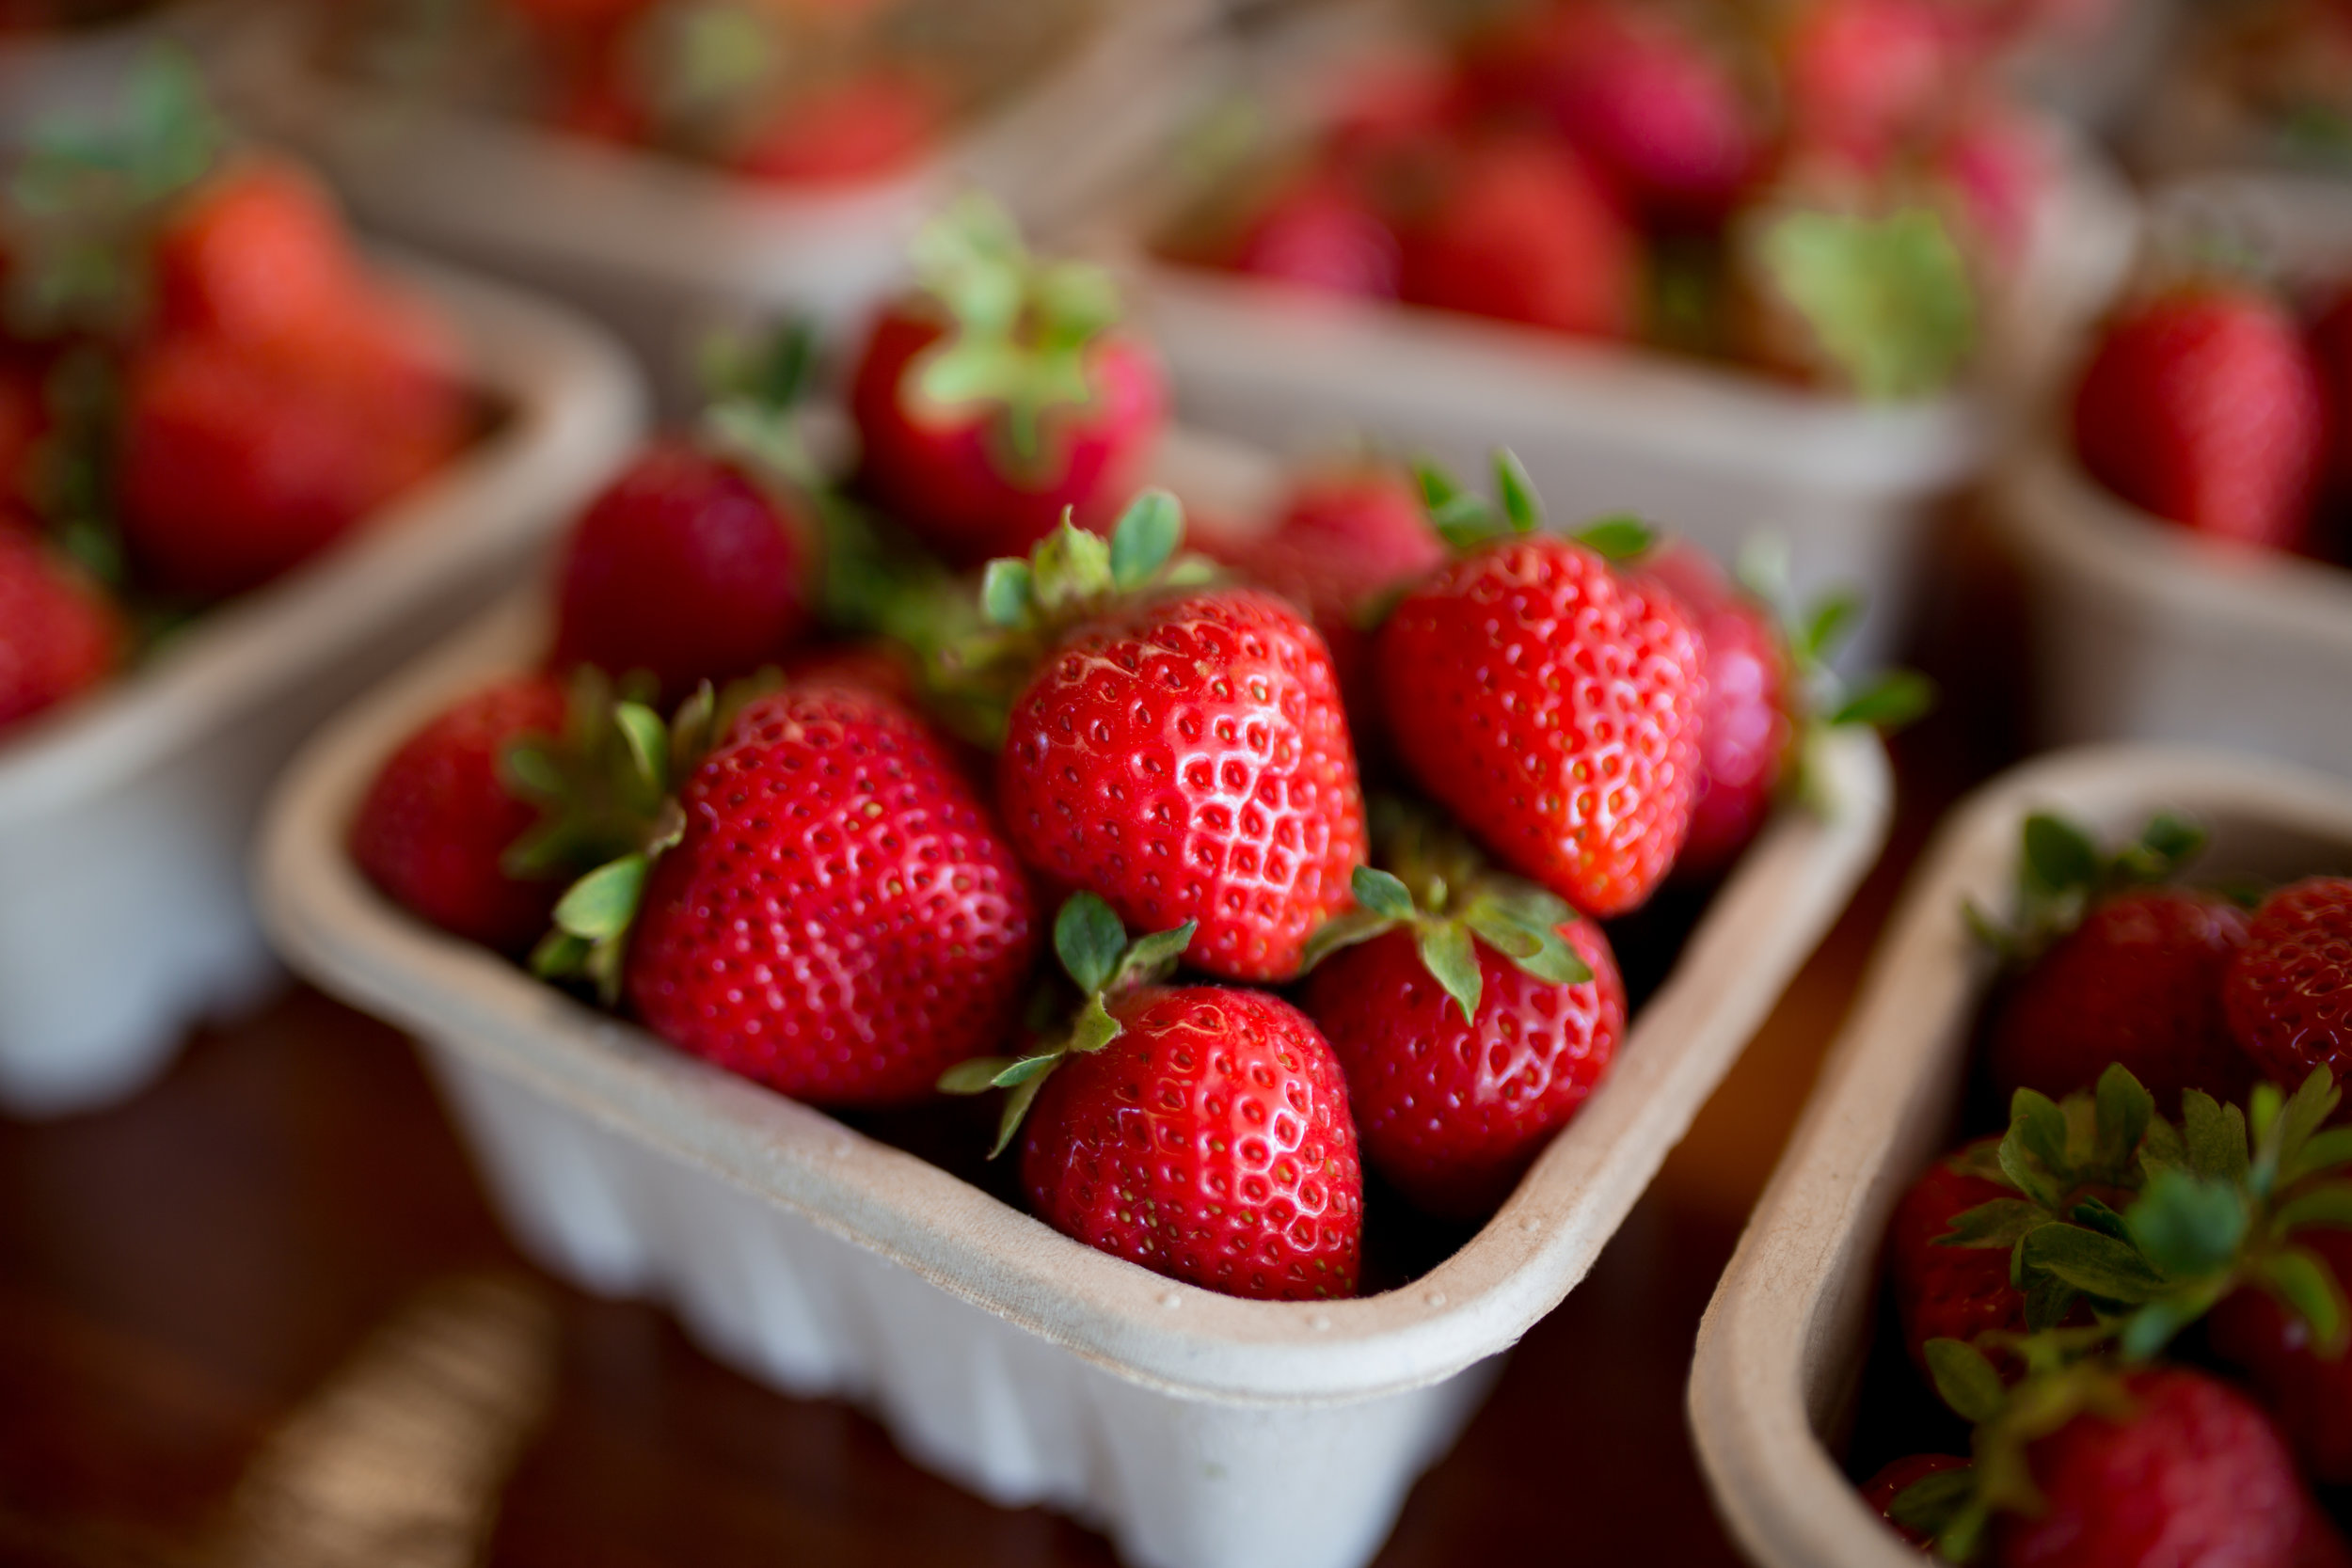 Buying and Storing - Look for bright red berries with green stems that look alive. Berries should be stored cool and dry and for no more than a couple of days